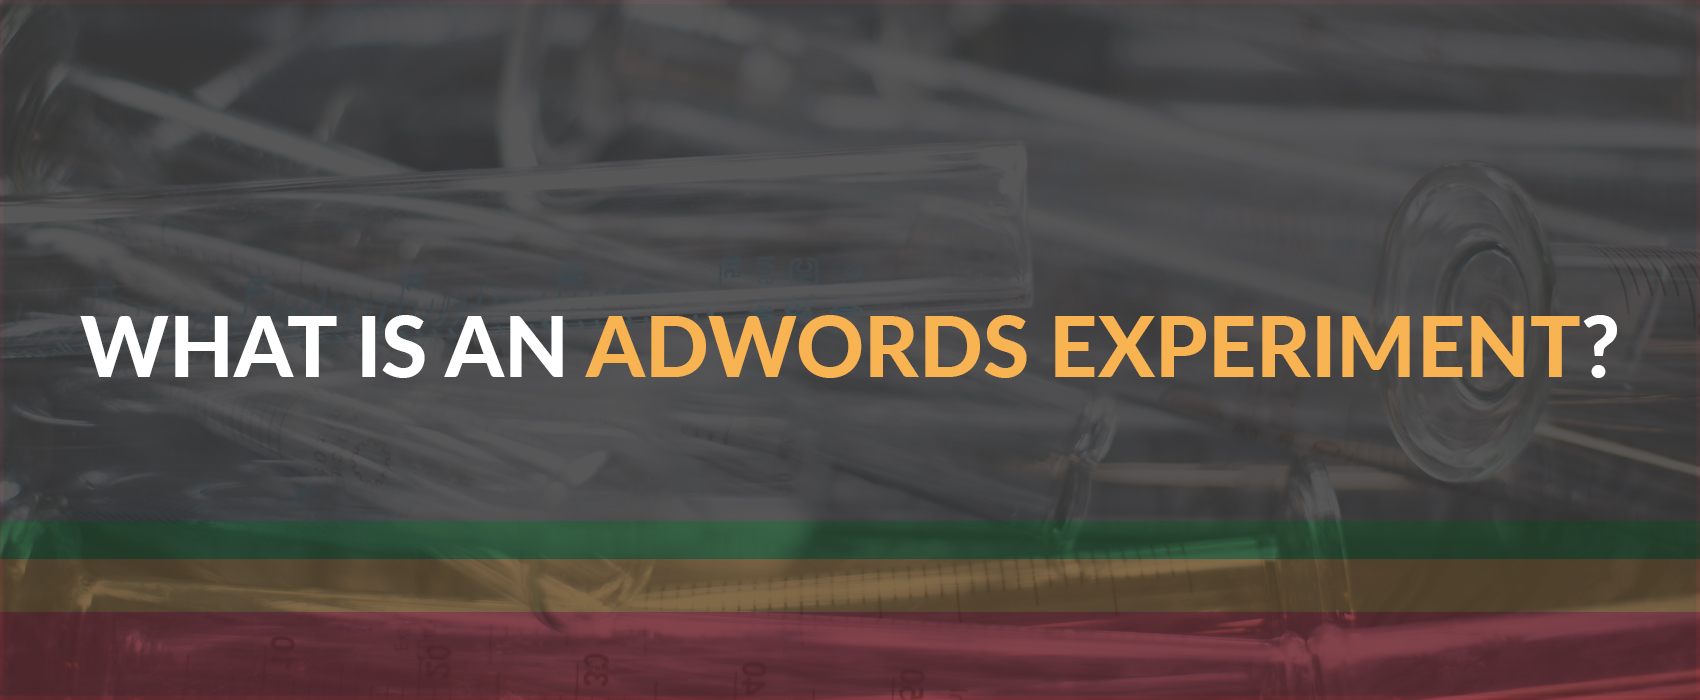 clickscore_adwords_experiment